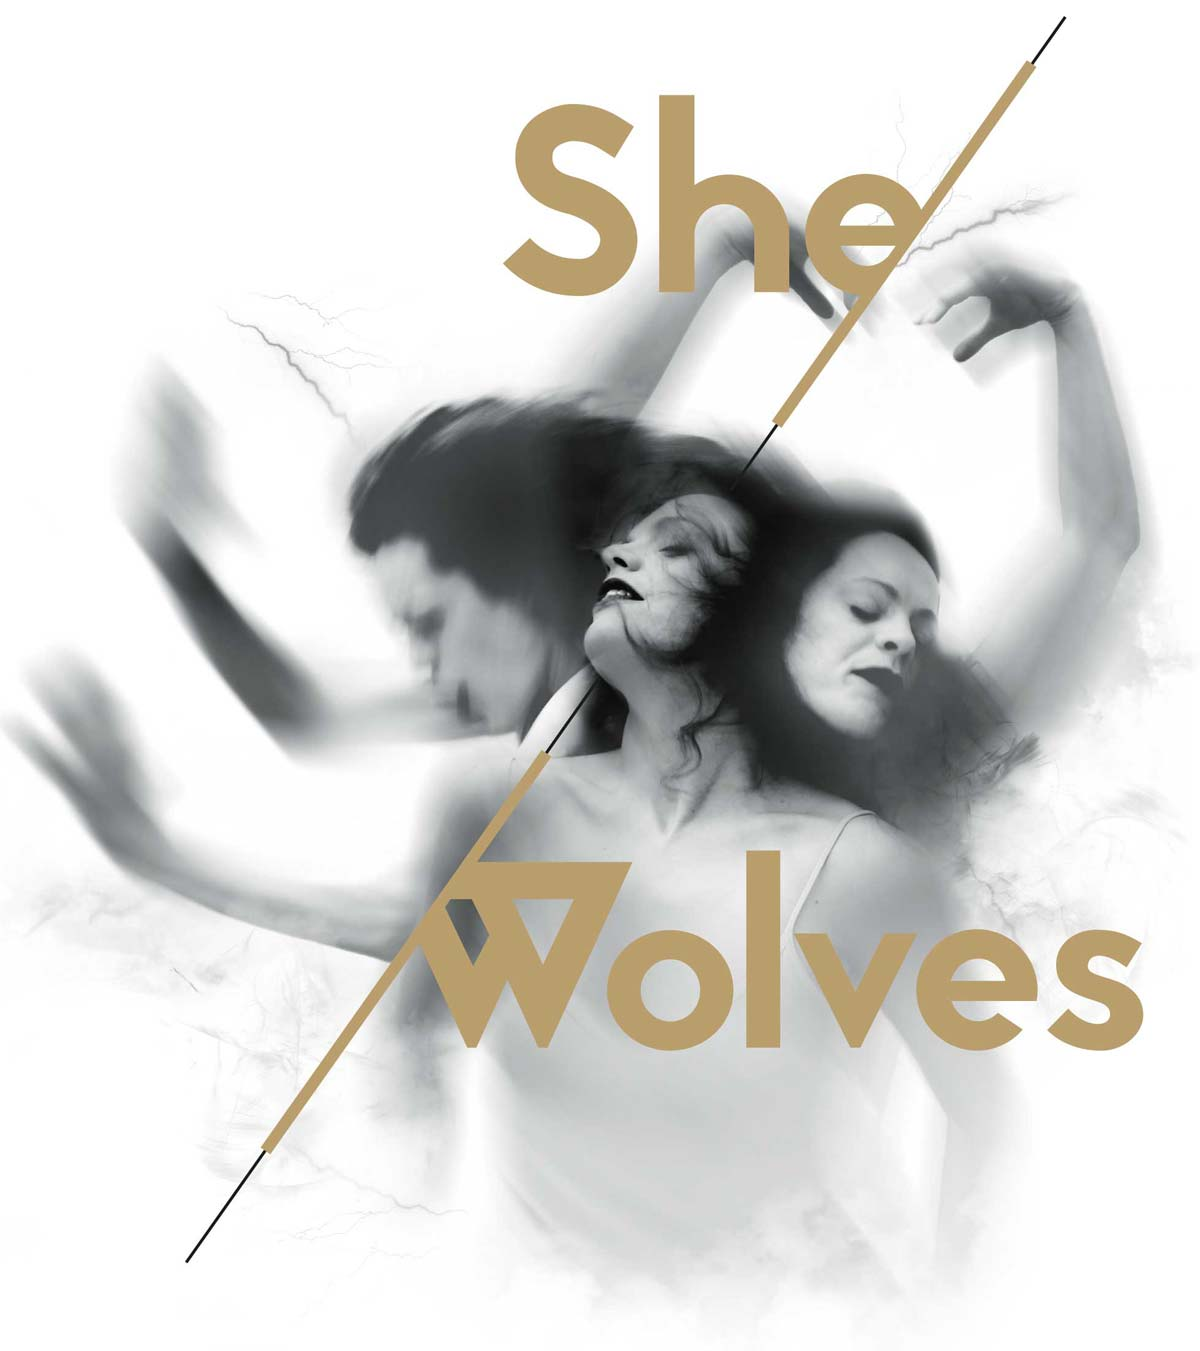 She-Wolves Project – dance, theatre and history production created and performed by Laura Careless, based BBC series and book by historian Helen Castor